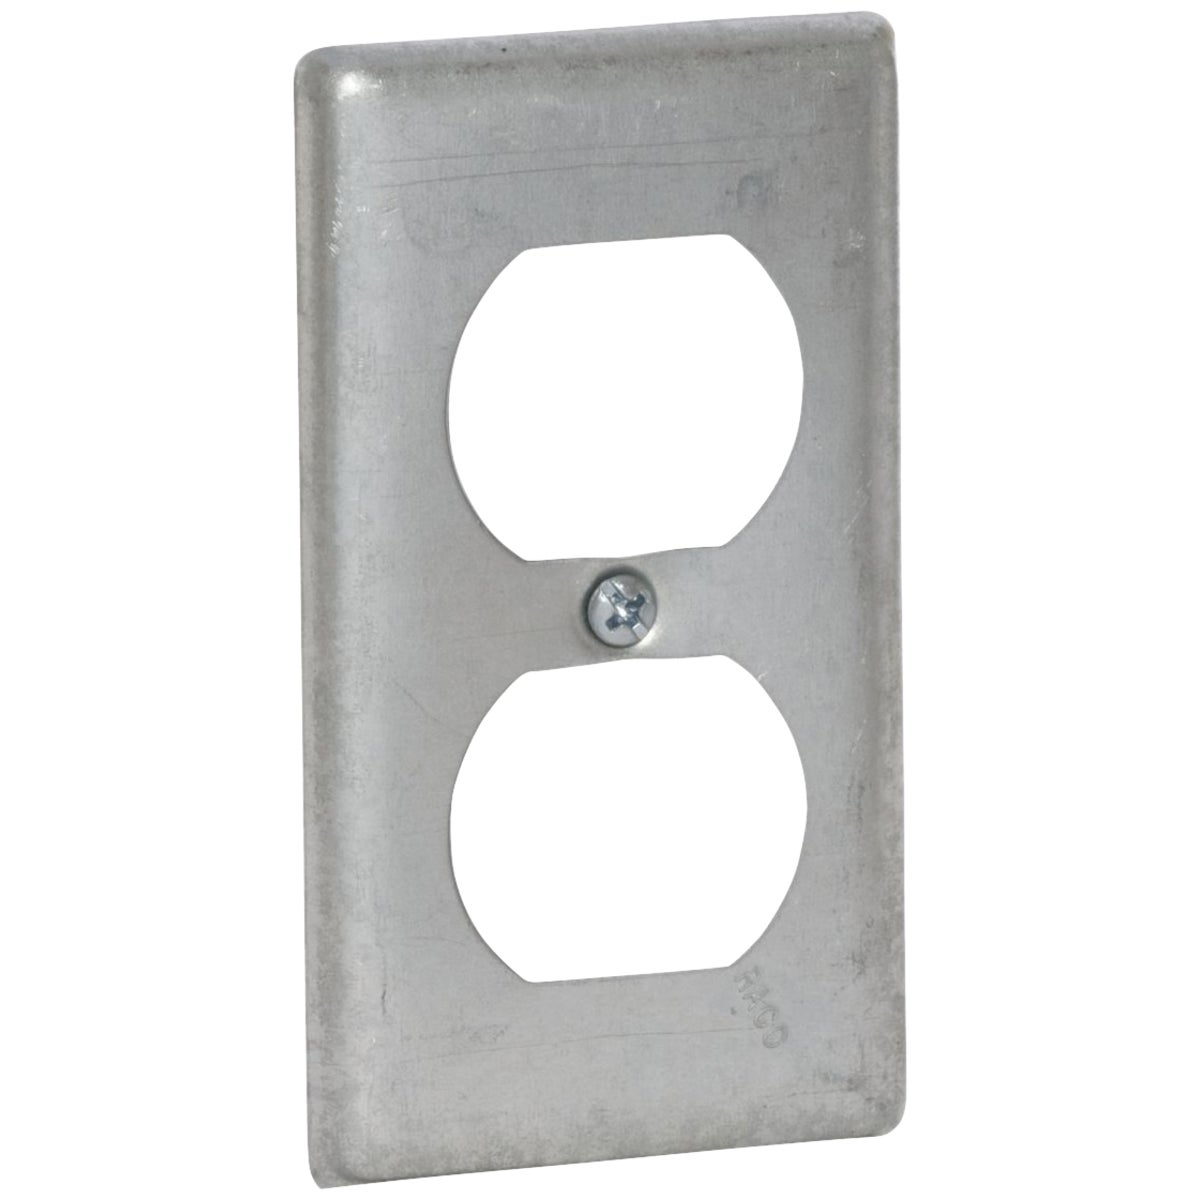 HANDY 2-OUTLET COVER - 58C7 by Thomas & Betts